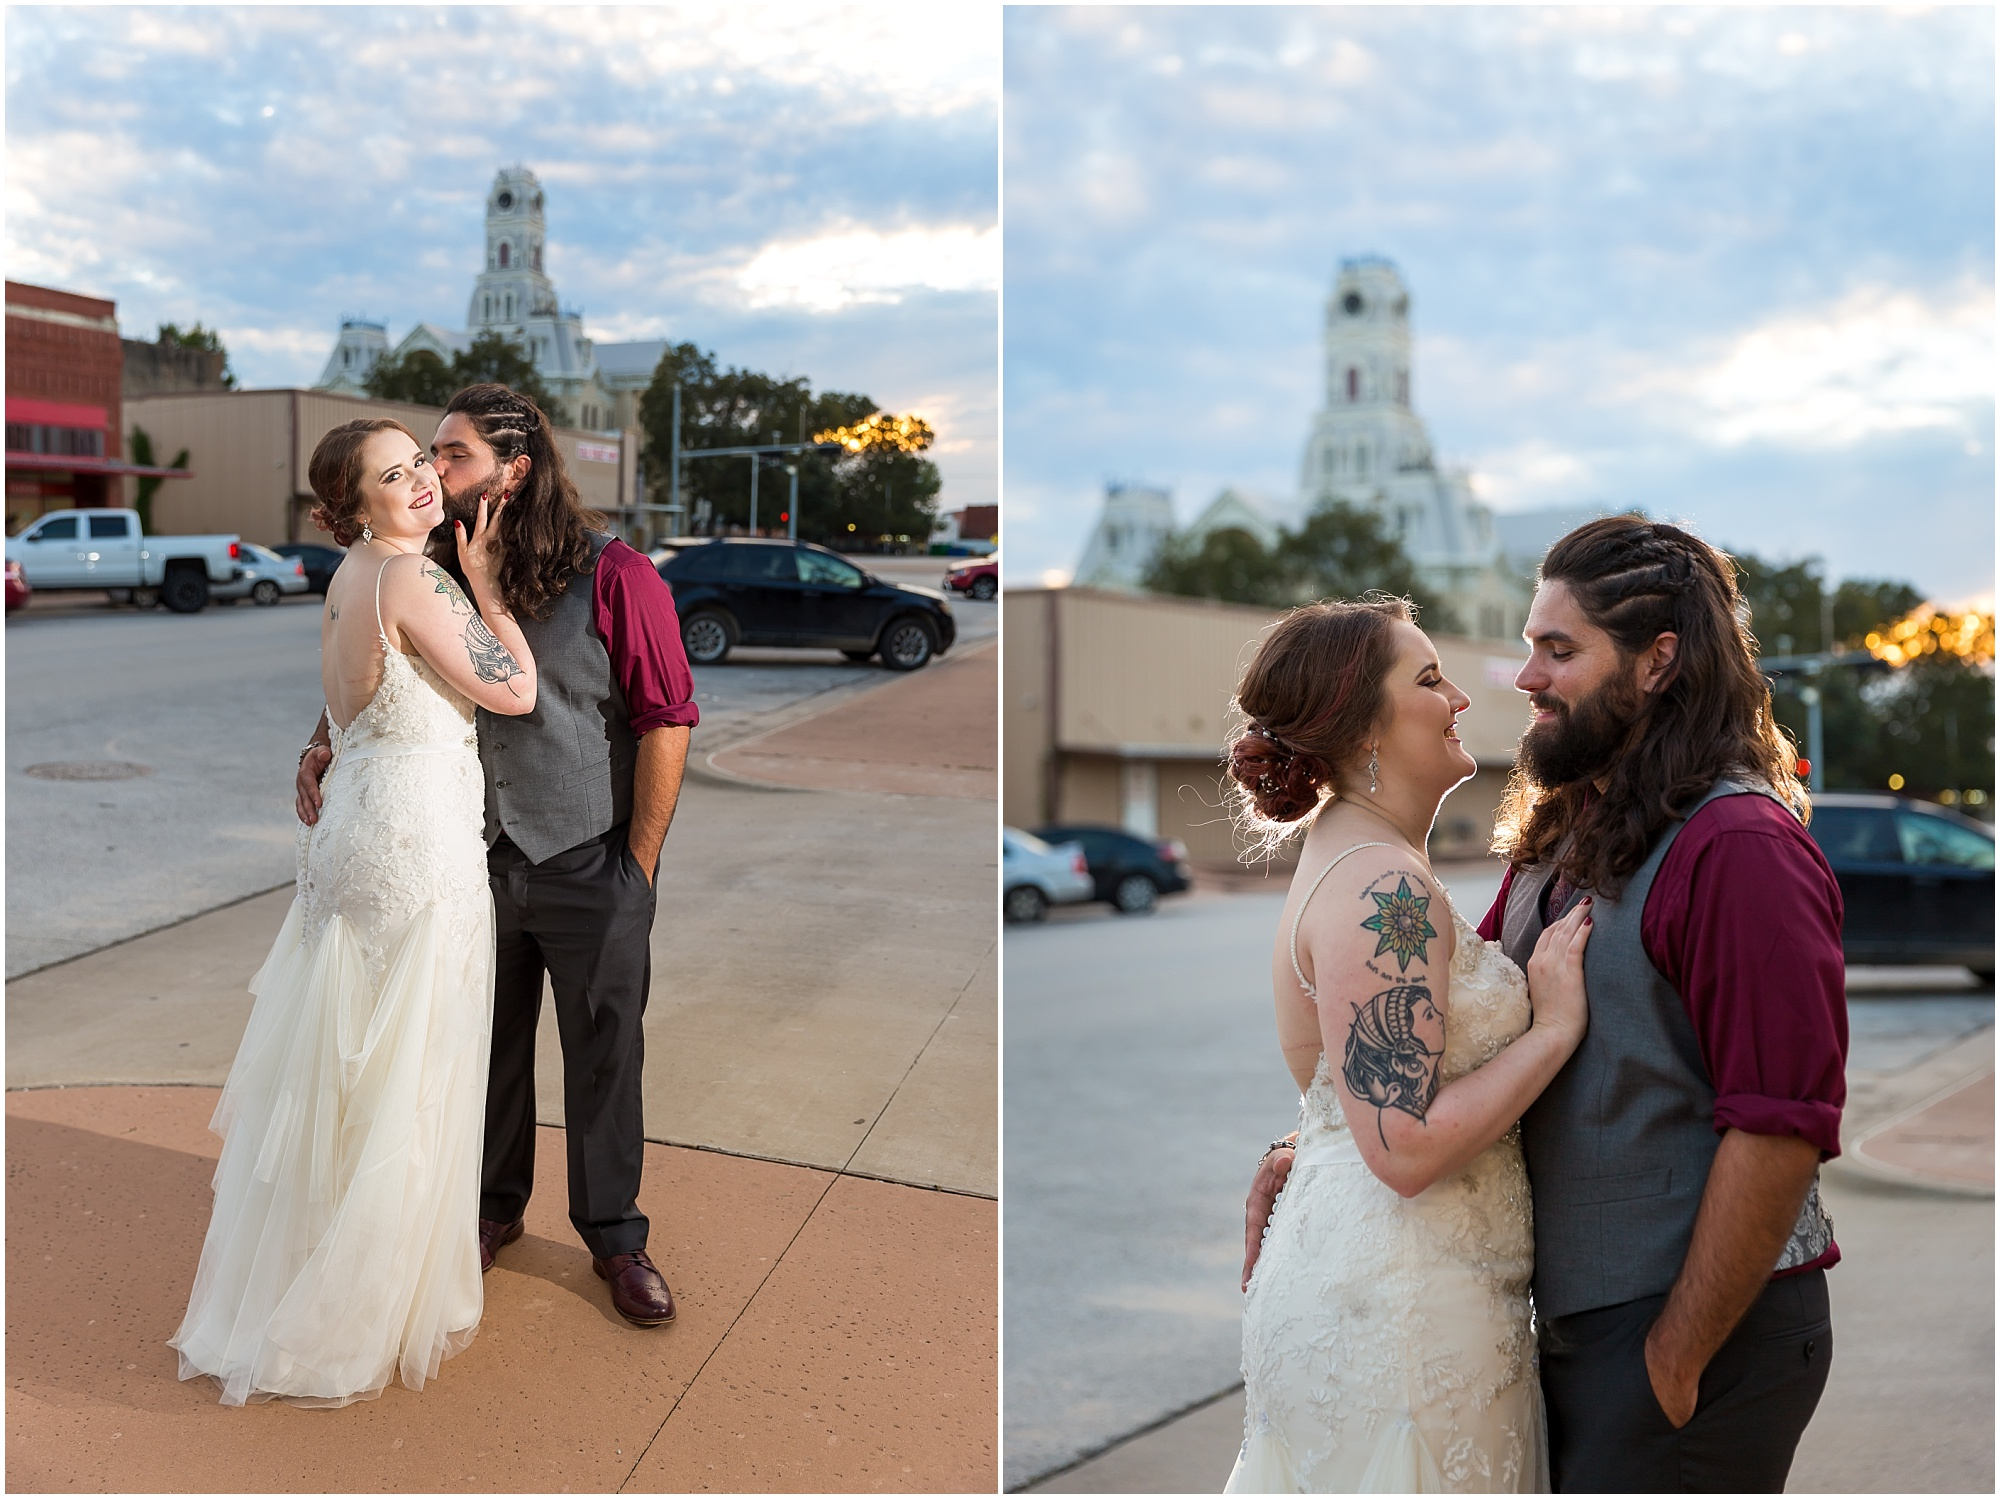 Sunset portraits in downtown Hillsboro, Tx - Jason & Melaina Photography - http://jasonandmelaina.com